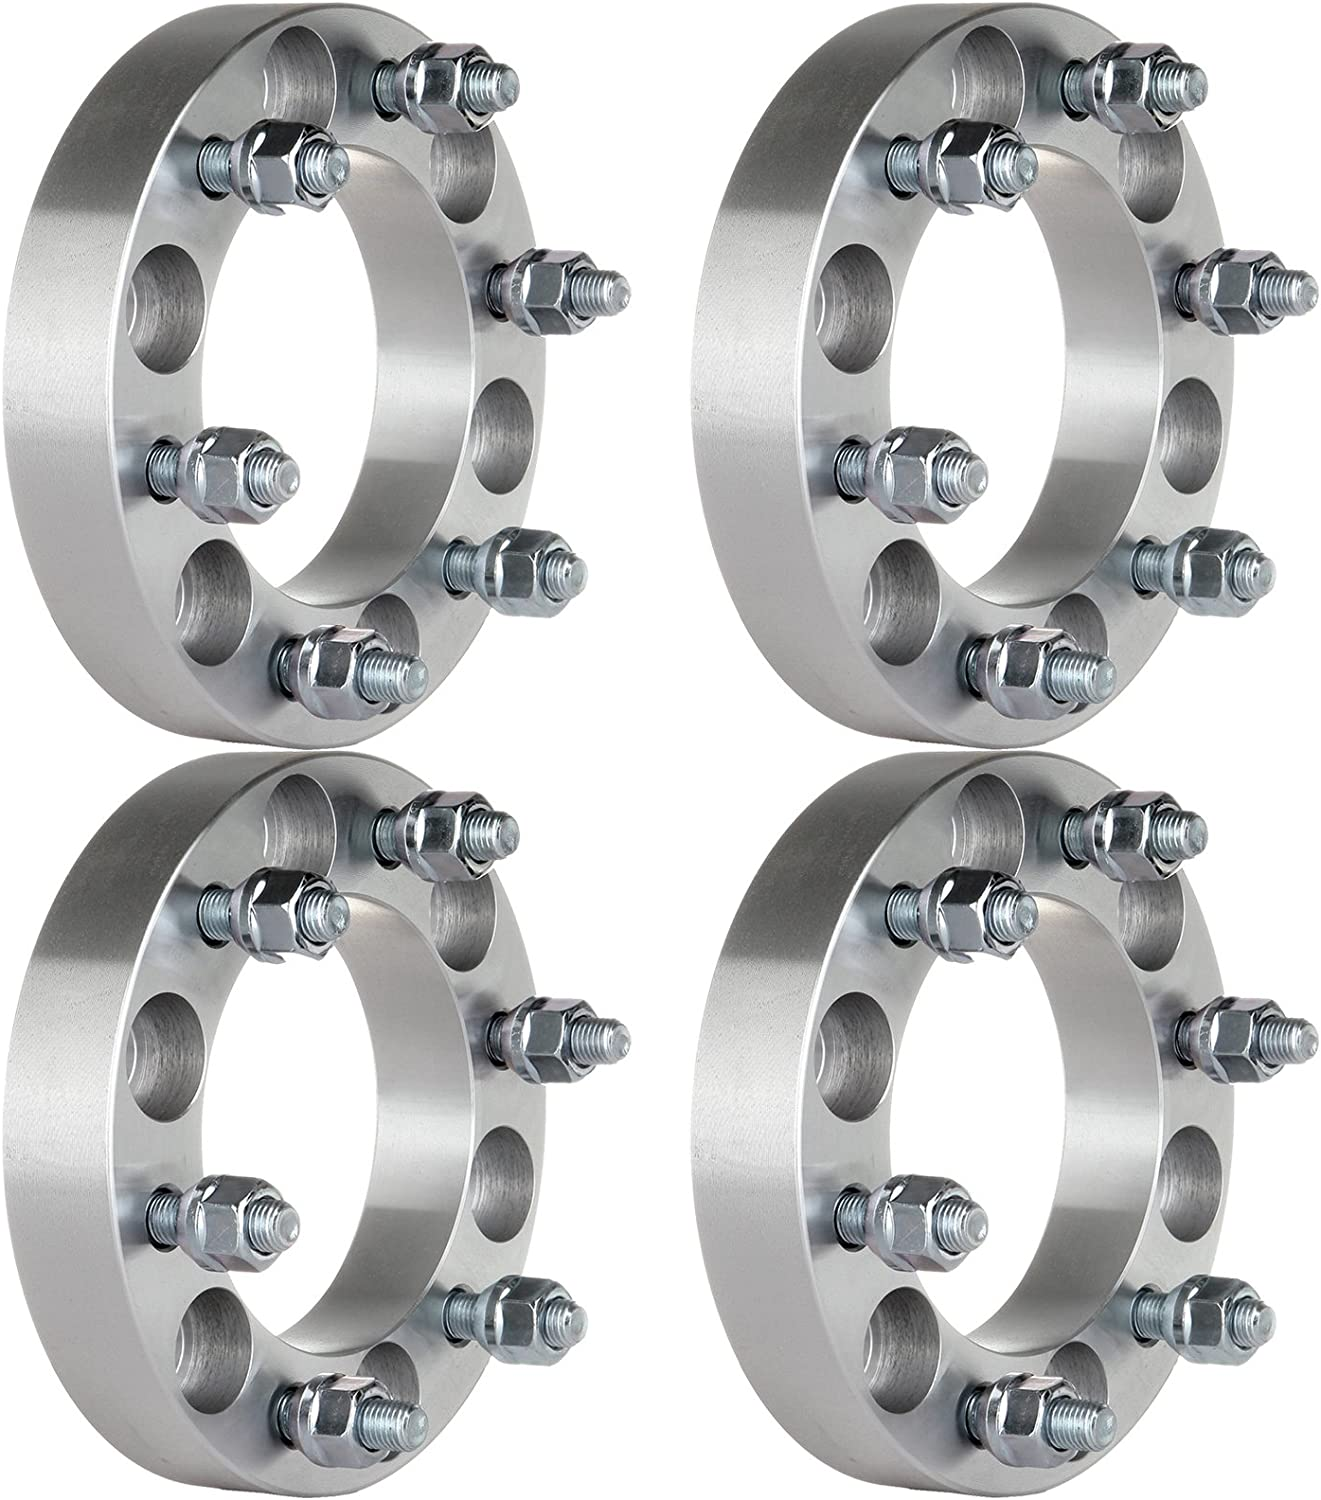 2X WHEEL RIM ADAPTERS SPACERS 6X5 TO 6X5.5 /& 6X135 TO 6X139.7 32MM 1.25 INCH